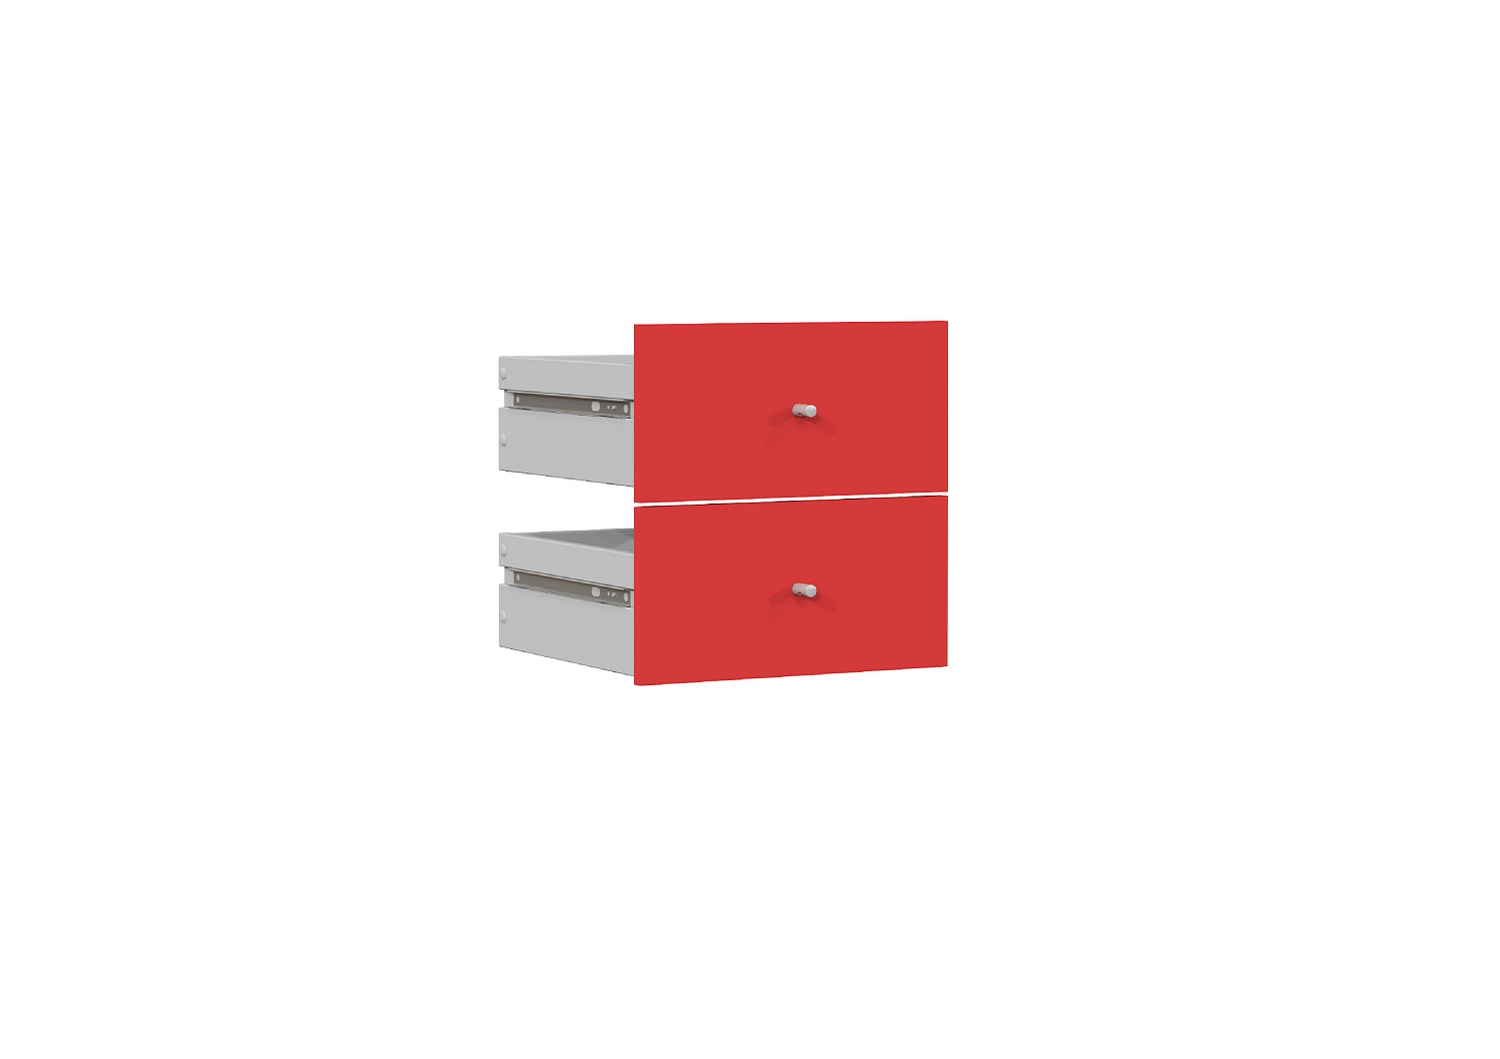 Bilrich Storage Furniture - Multi Kaz Accessory Set of 2 Drawers Red